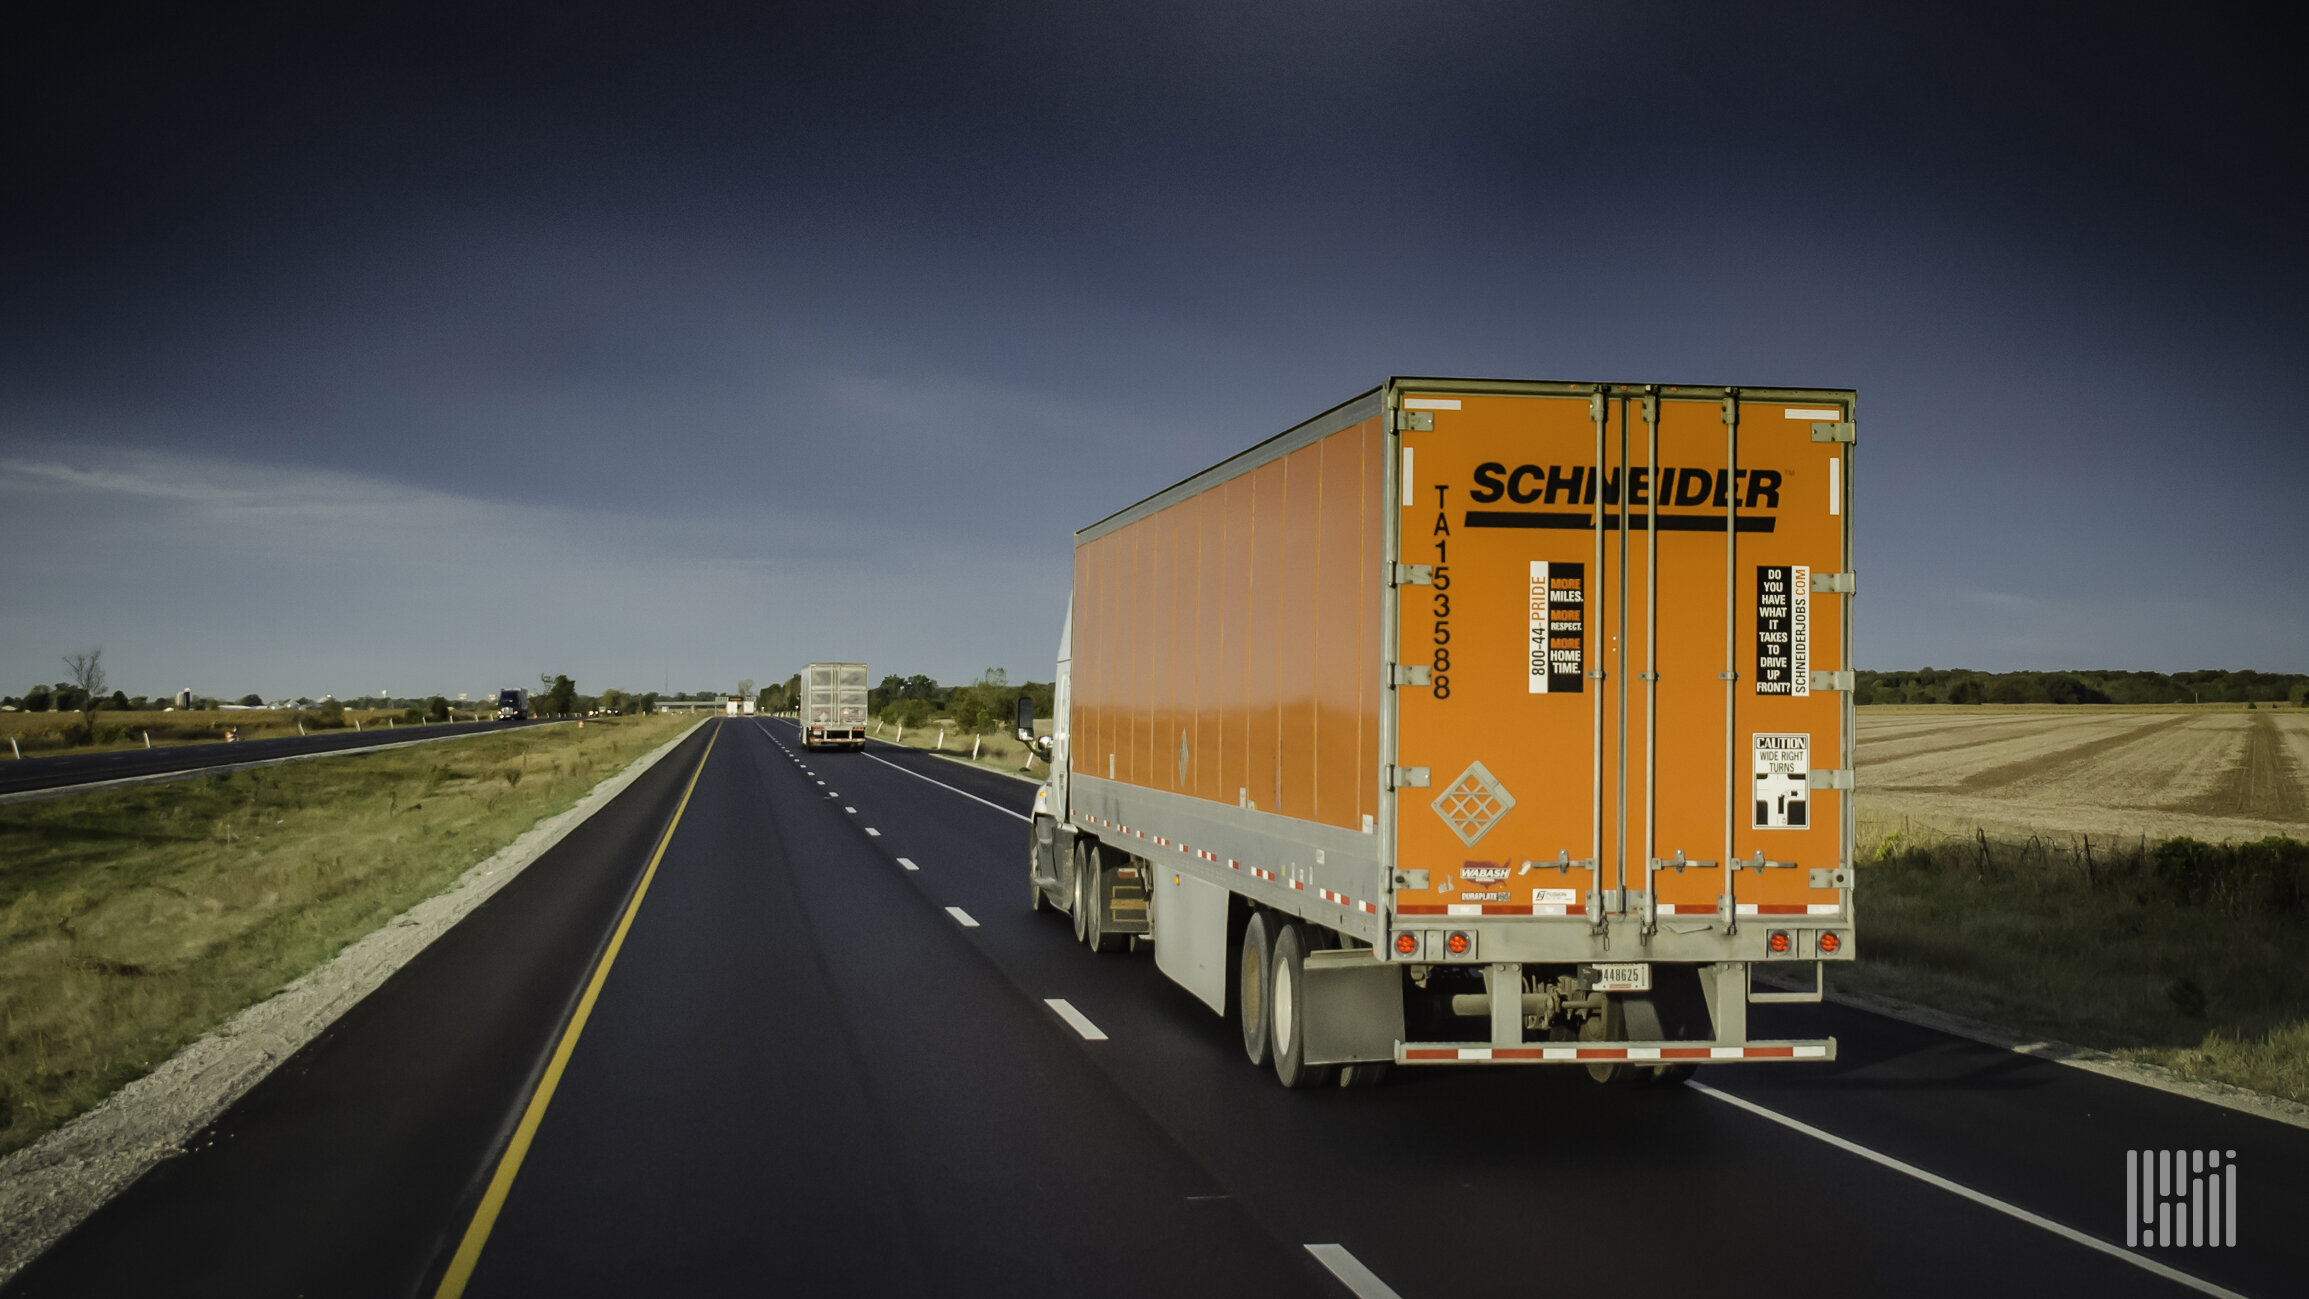 In what appears to be the opening salvo in what could be a battle of truckload carriers seeking to hang on to and increase their driver base, Schneider National this week announced a pay increase. (Photo: Jim Allen/FreightWaves)